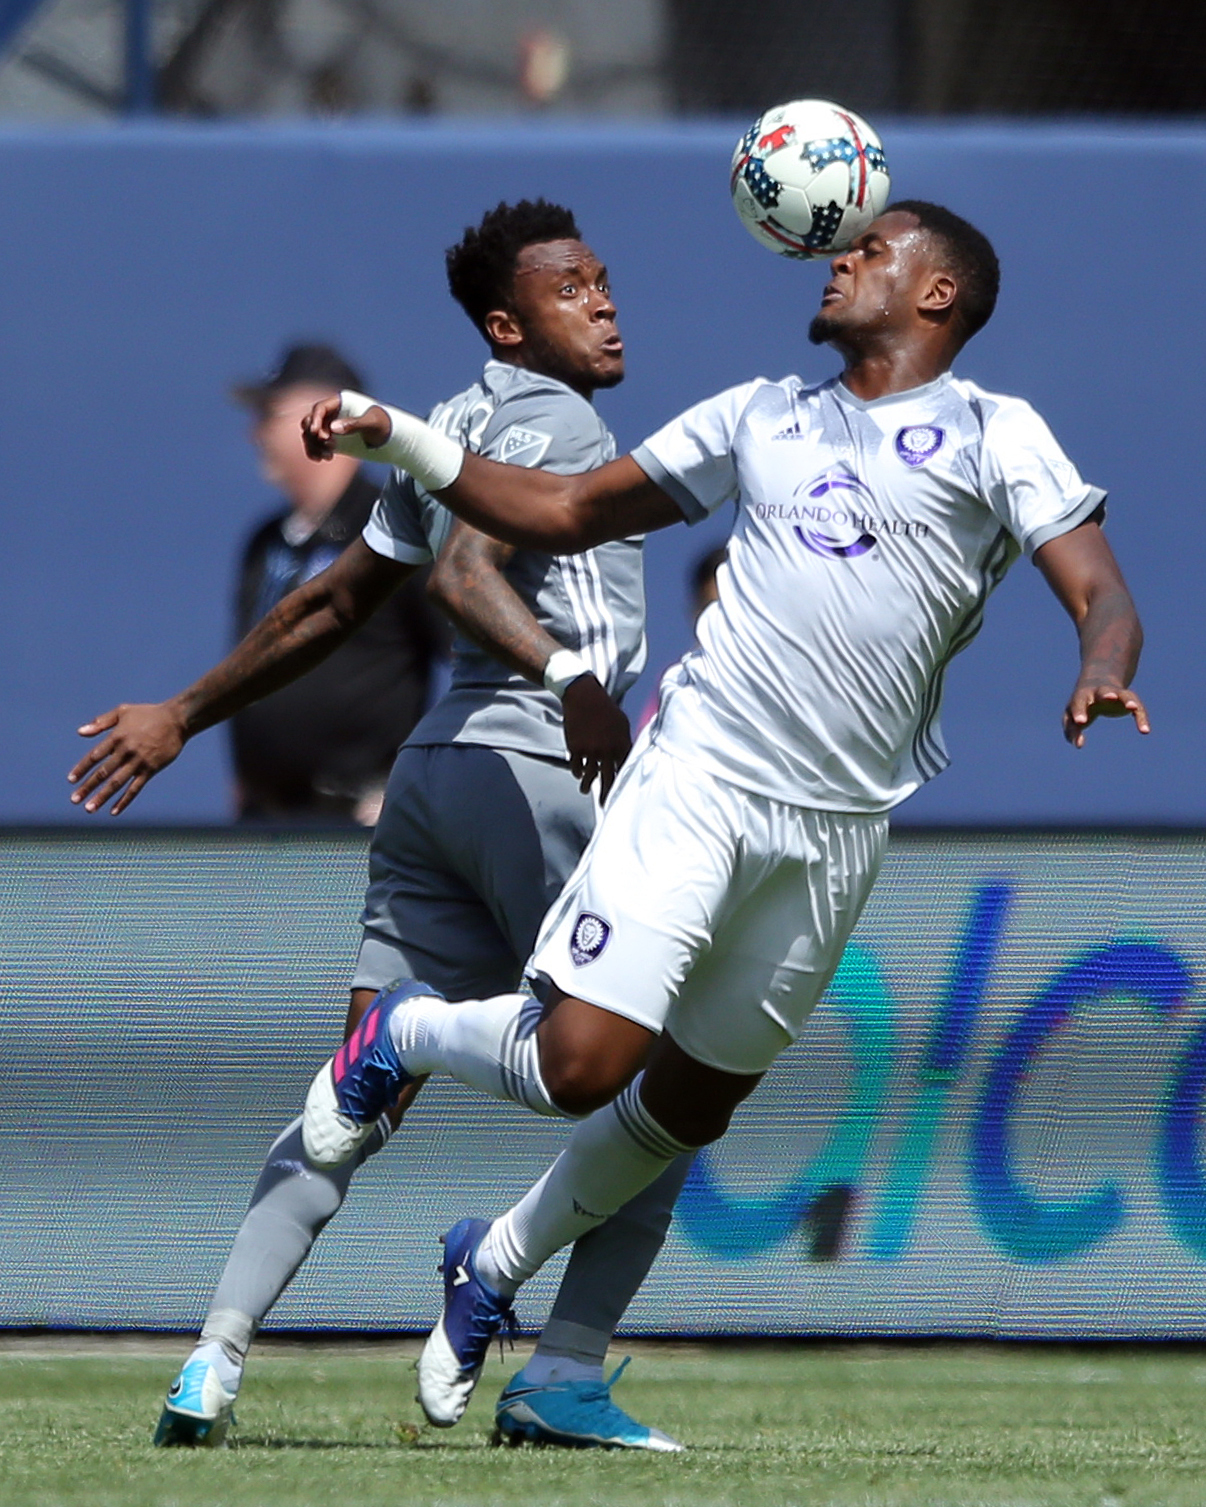 Apr 23, 2017; New York, NY, USA; Orlando City SC forward Cyle Larin (9) plays the ball against New York City FC midfielder Rodney Wallace (23) during the first half at Yankee Stadium. Mandatory Credit: Brad Penner-USA TODAY Sports